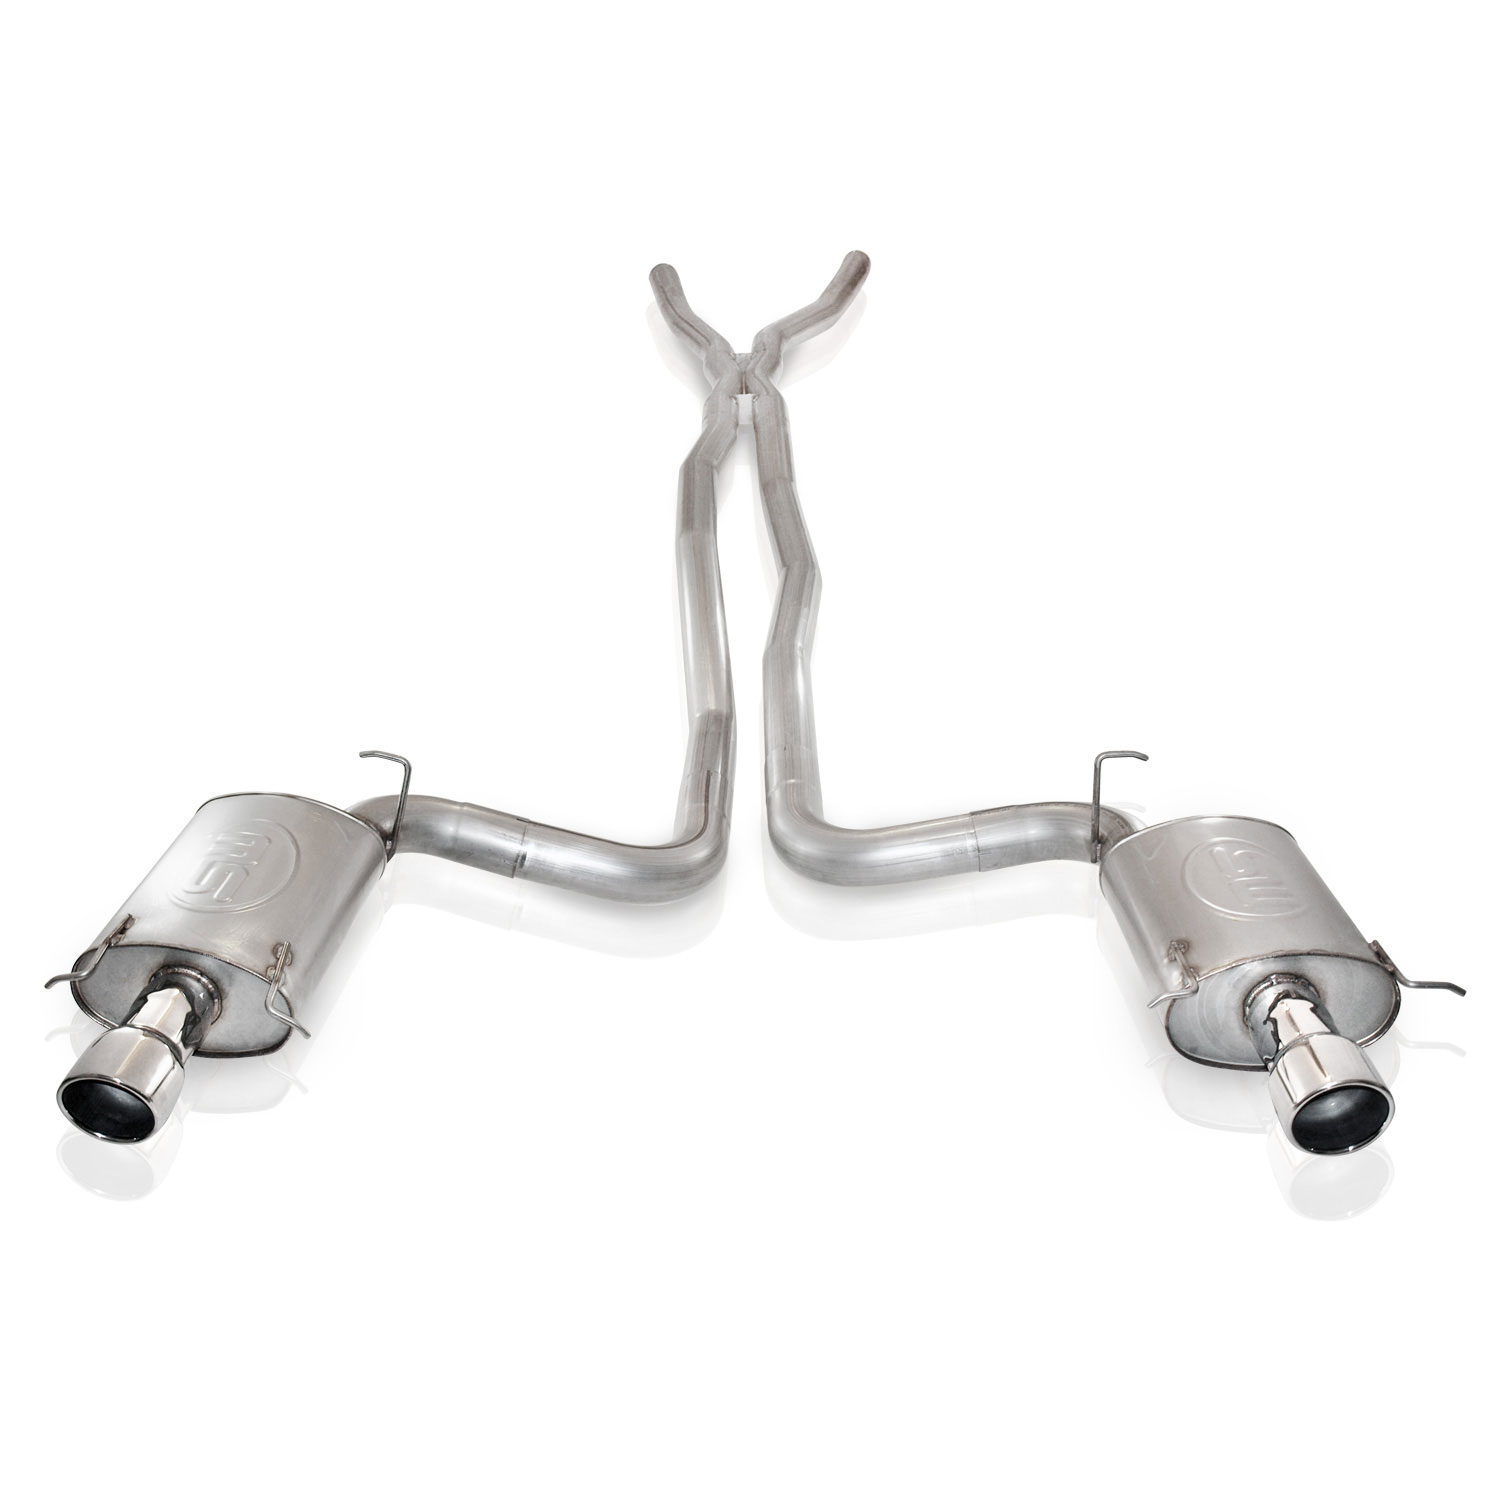 Stainless Works CTSVEHXOR - Stainless Works 2004 - 2007 Cadillac CTS-V LS1 / LS2 Full Exhaust 3